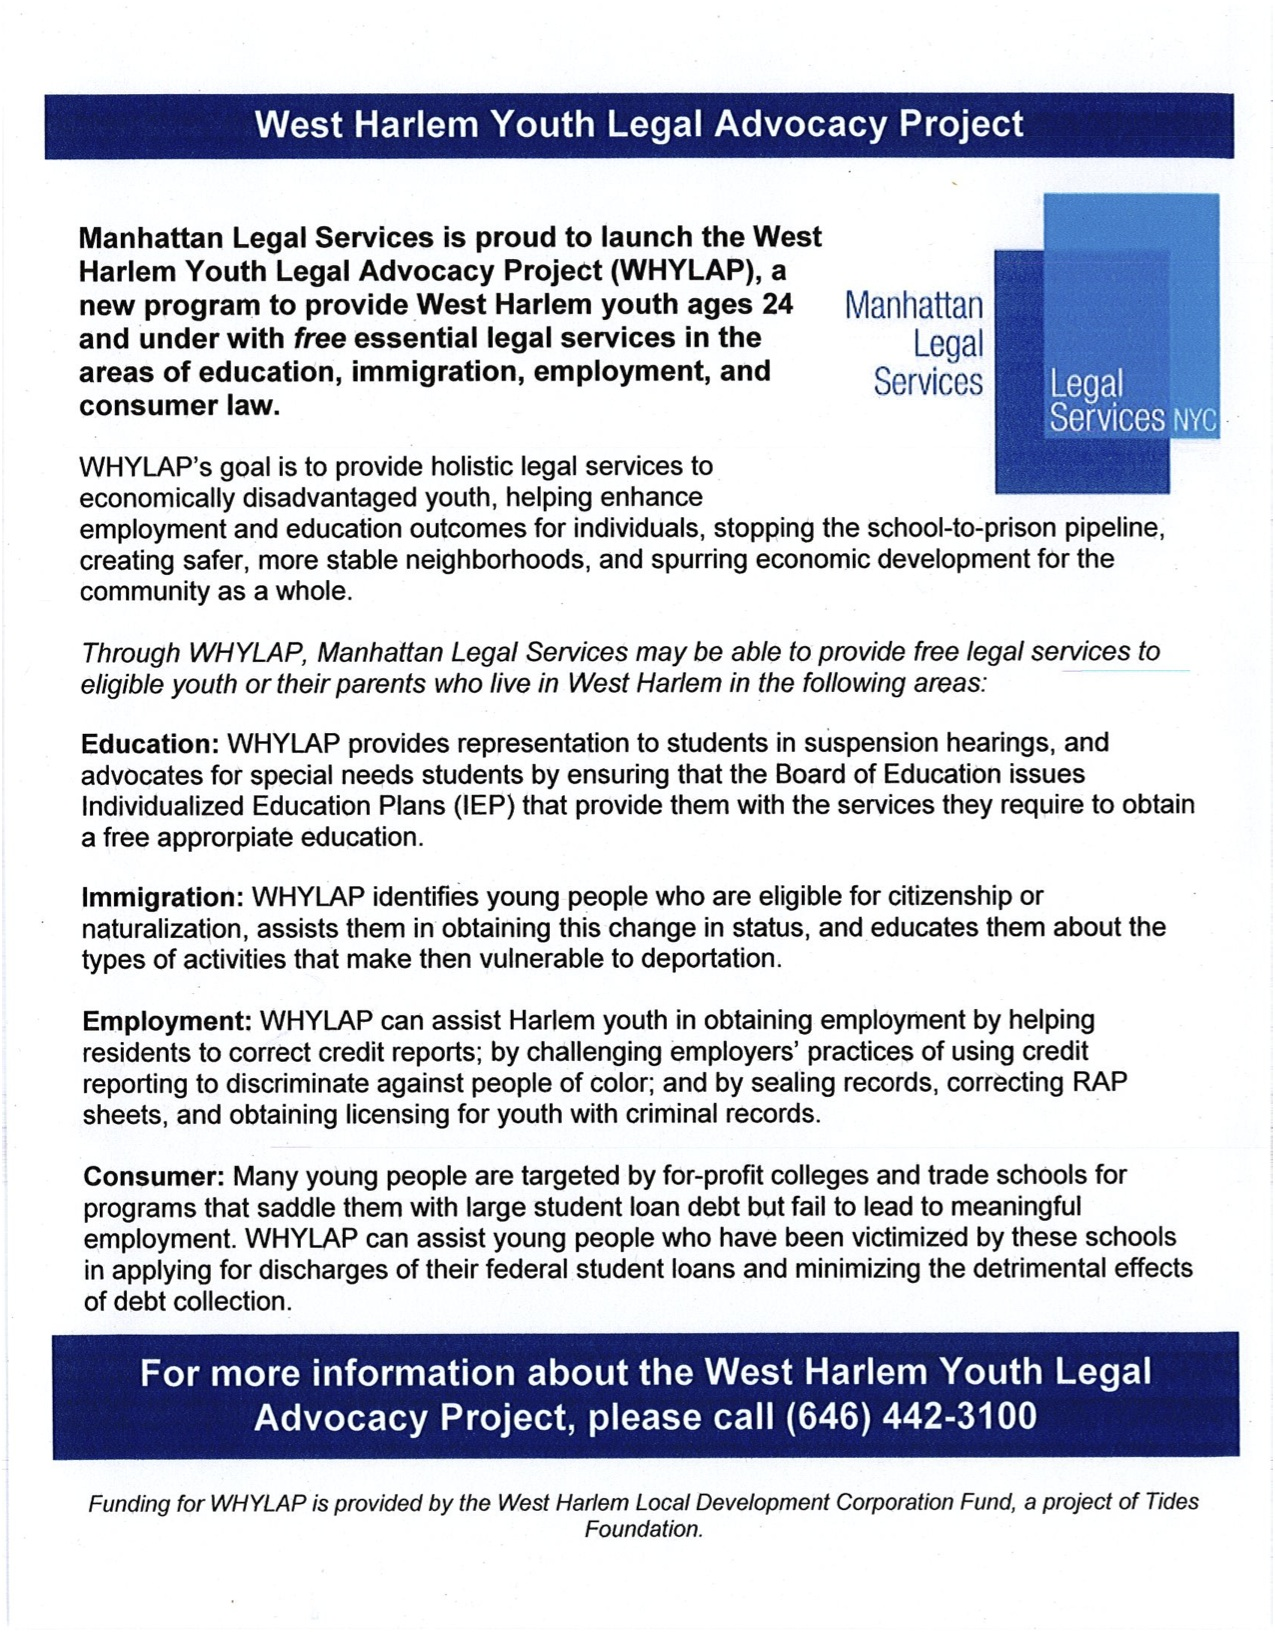 west harlem development corporation community news please see flyer below